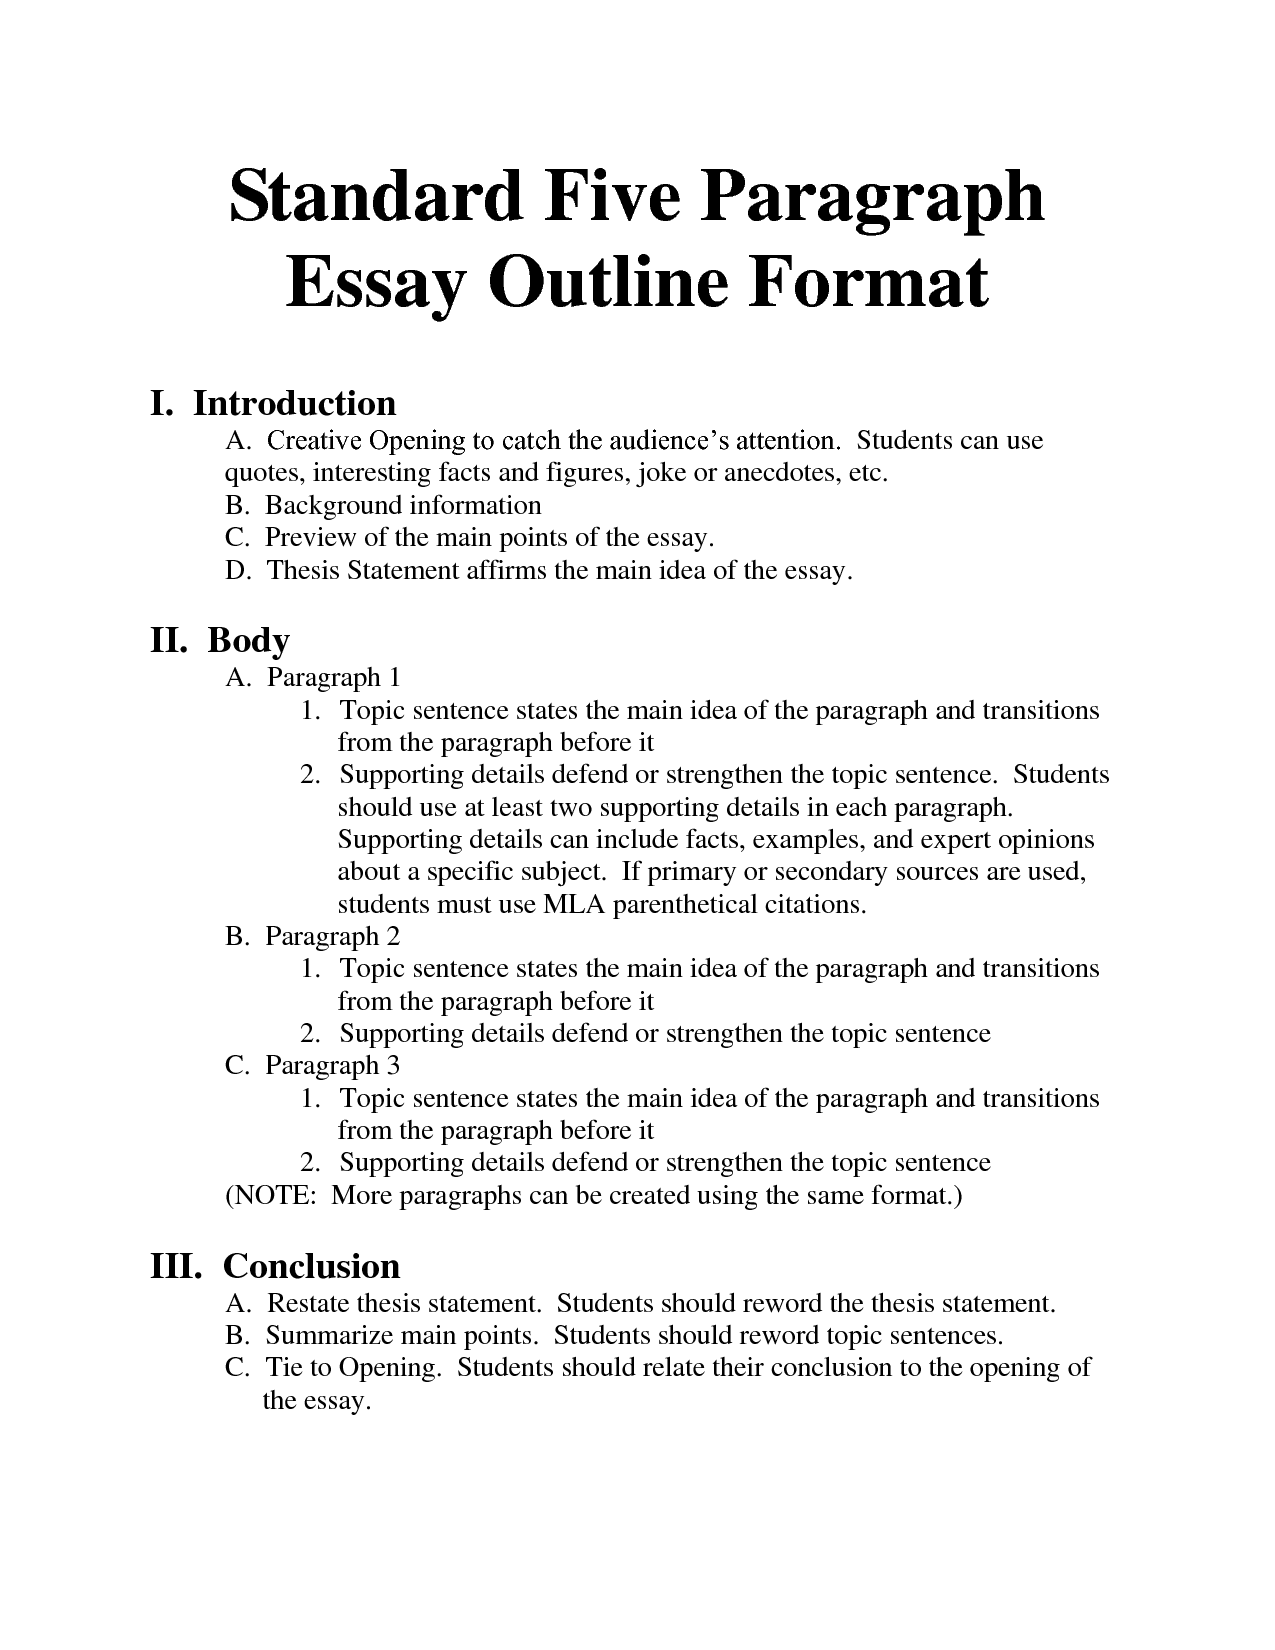 english essay outline format english essay report format college english essay report format say you search and help me